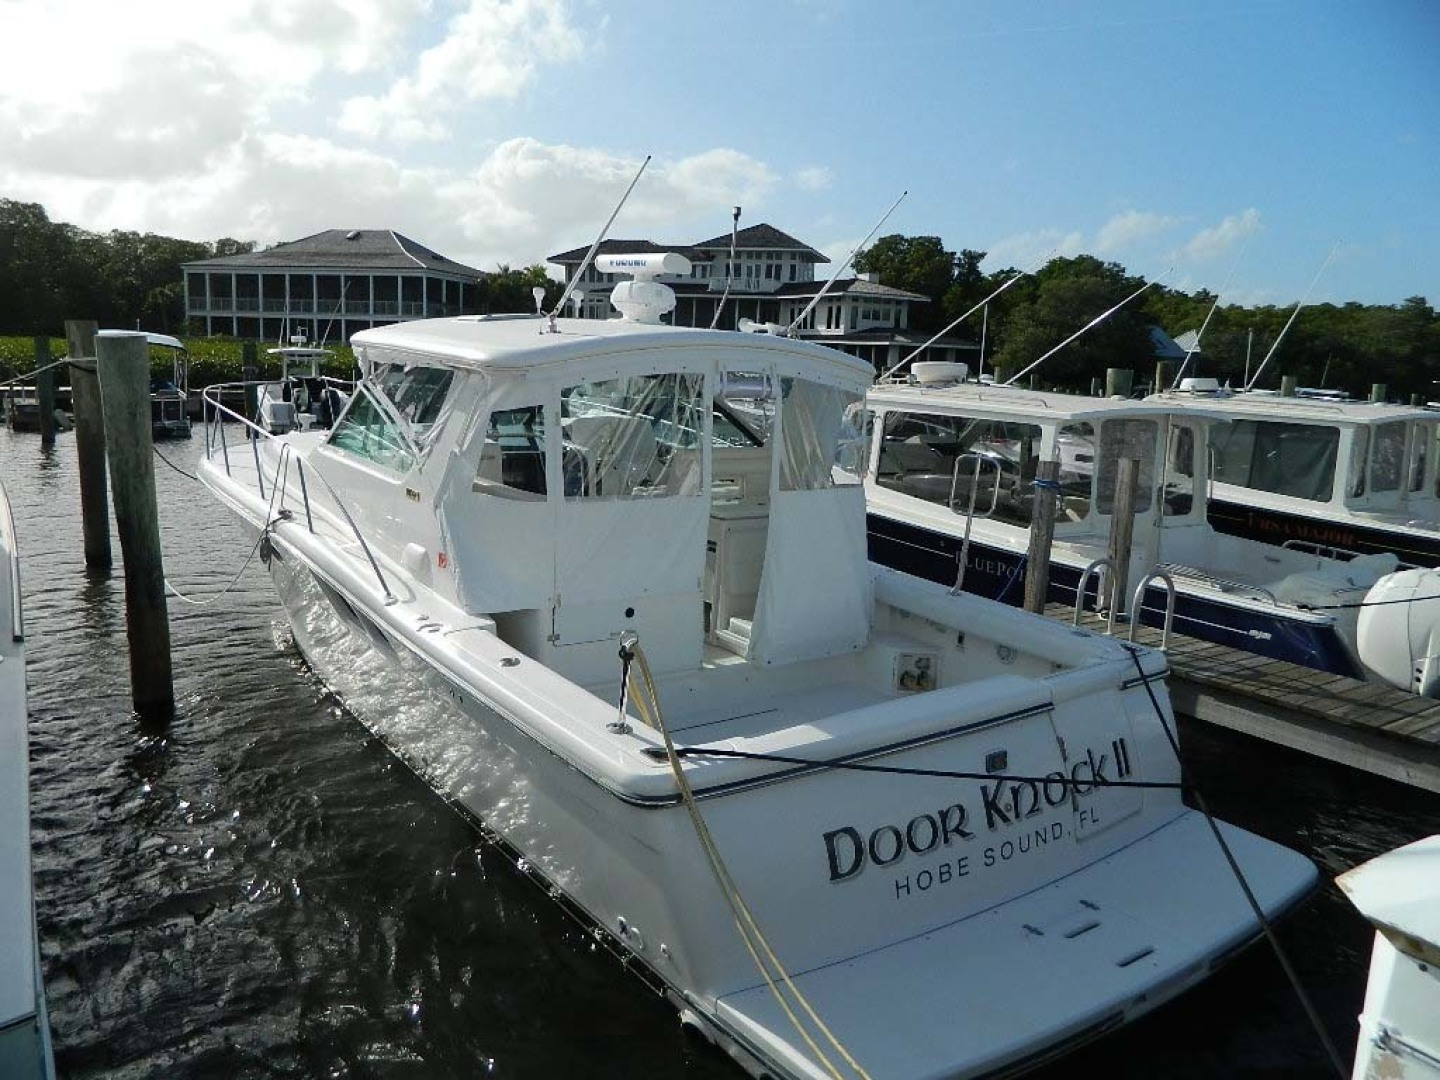 Tiara-Open 2004-Door Knock II Hobe Sound-Florida-United States-Stern-1315568 | Thumbnail